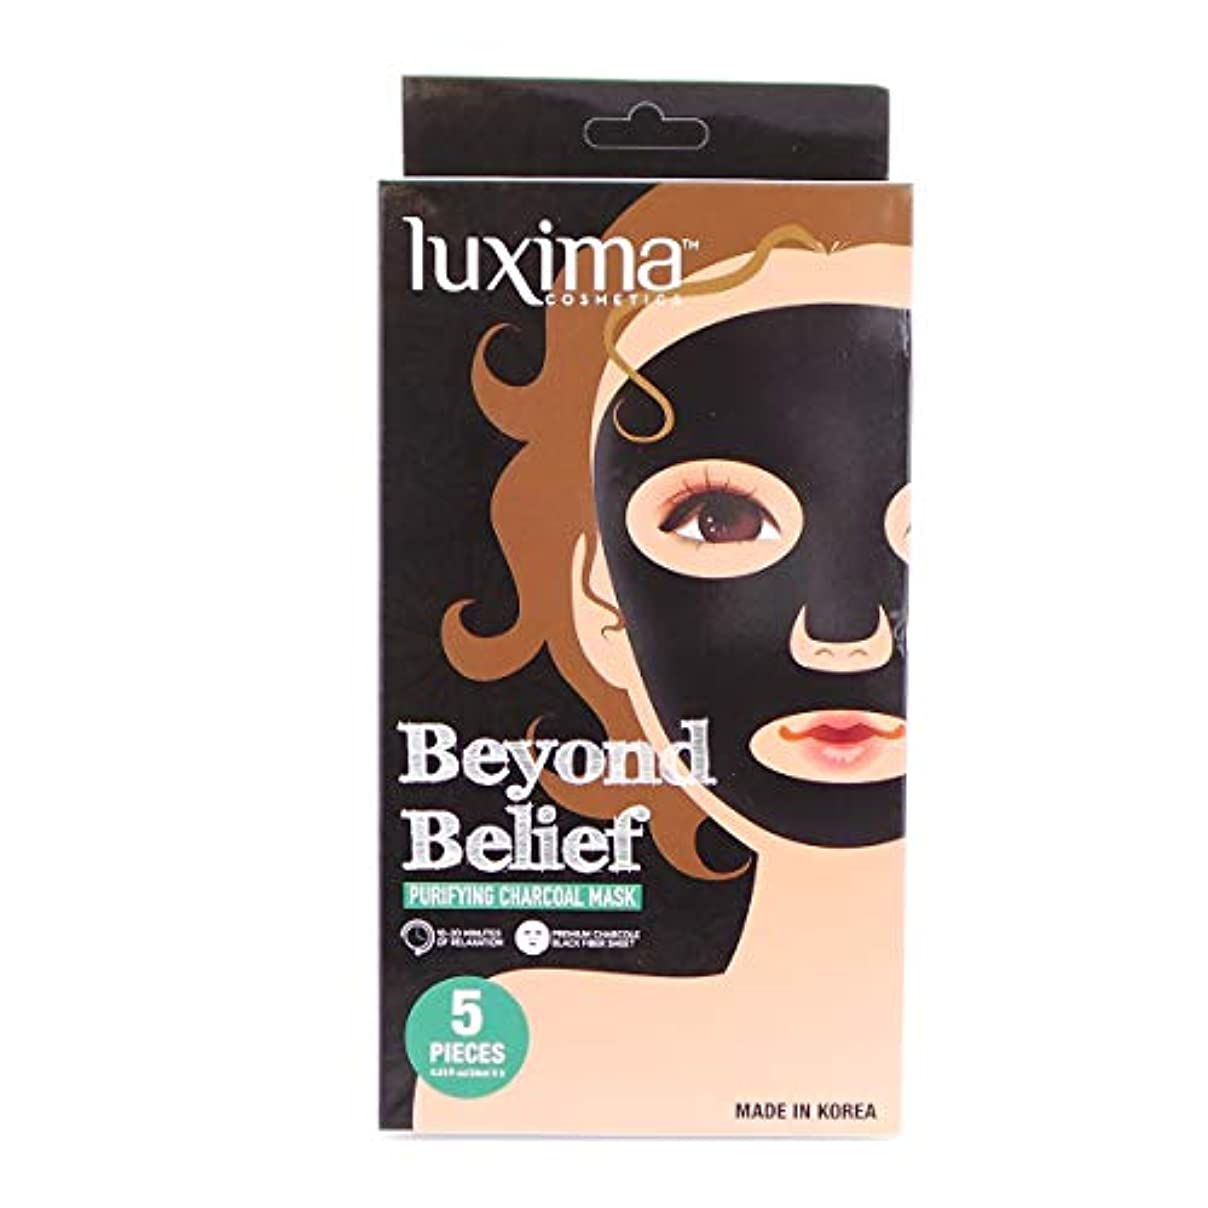 悩みサービスコンクリート(6 Pack) LUXIMA Beyond Belief Purifying Charcoal Mask, Pack of 5 (並行輸入品)